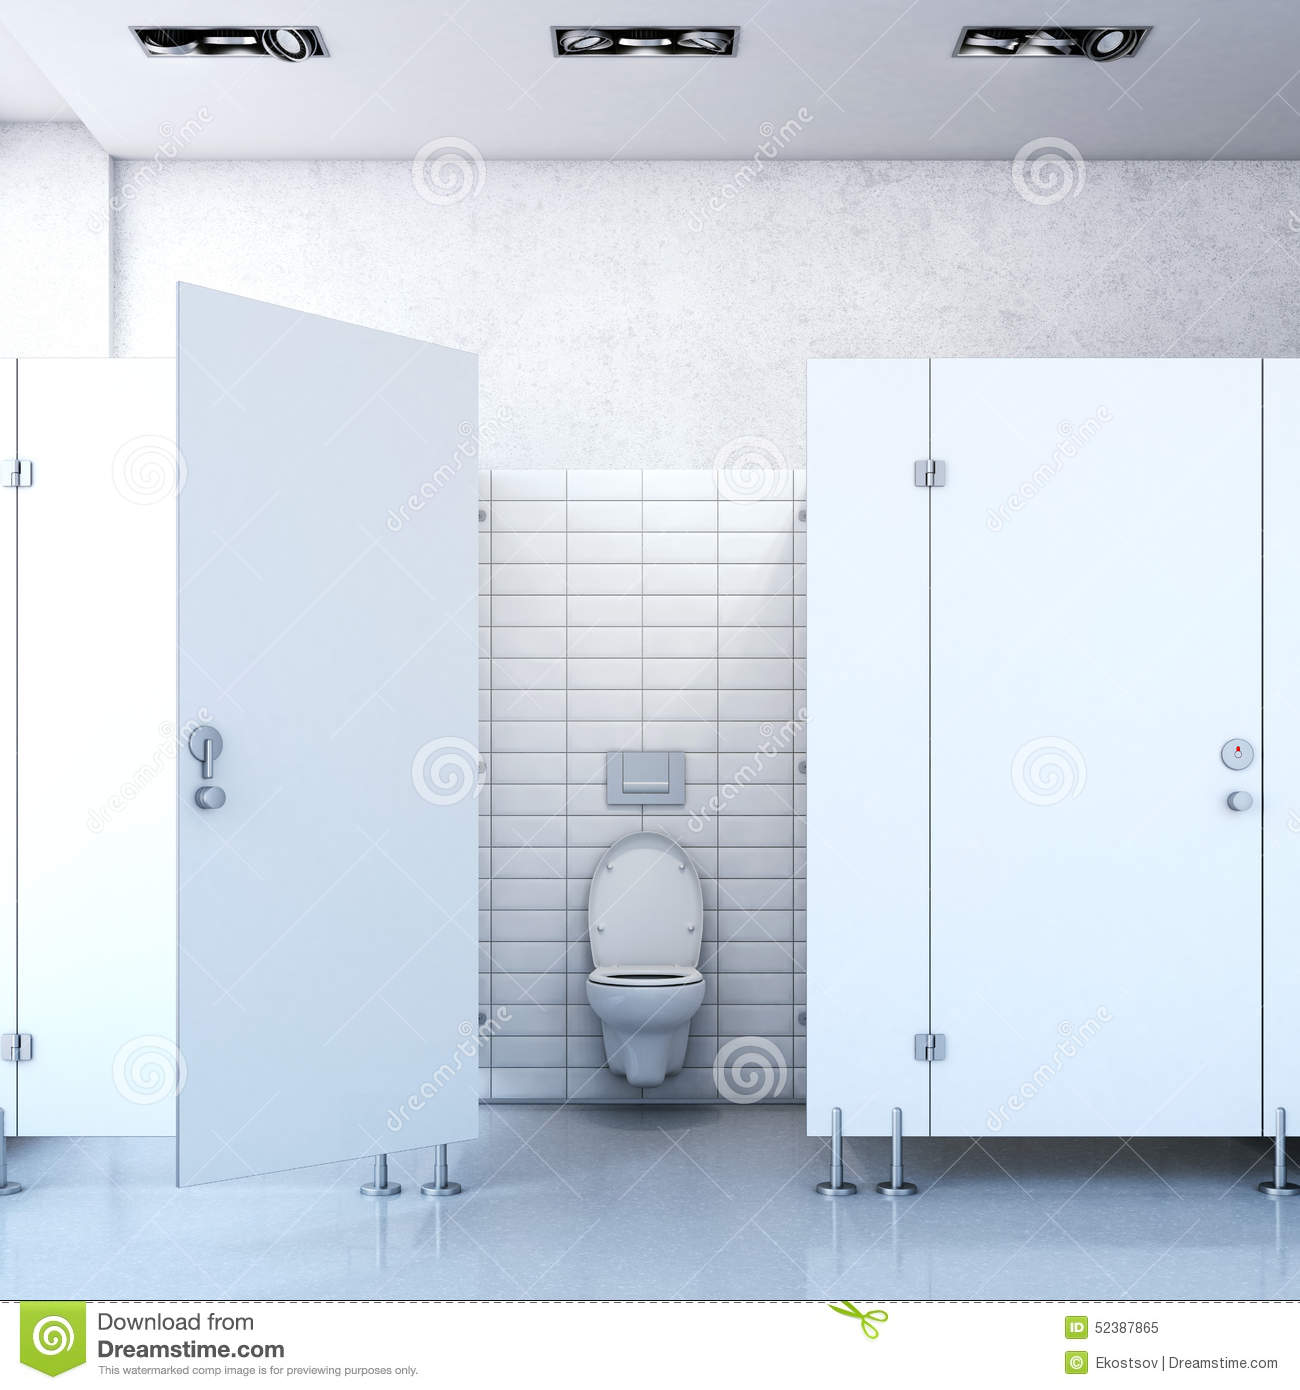 Public Toilet Cubicle 3d Rendering Stock Image Image Of